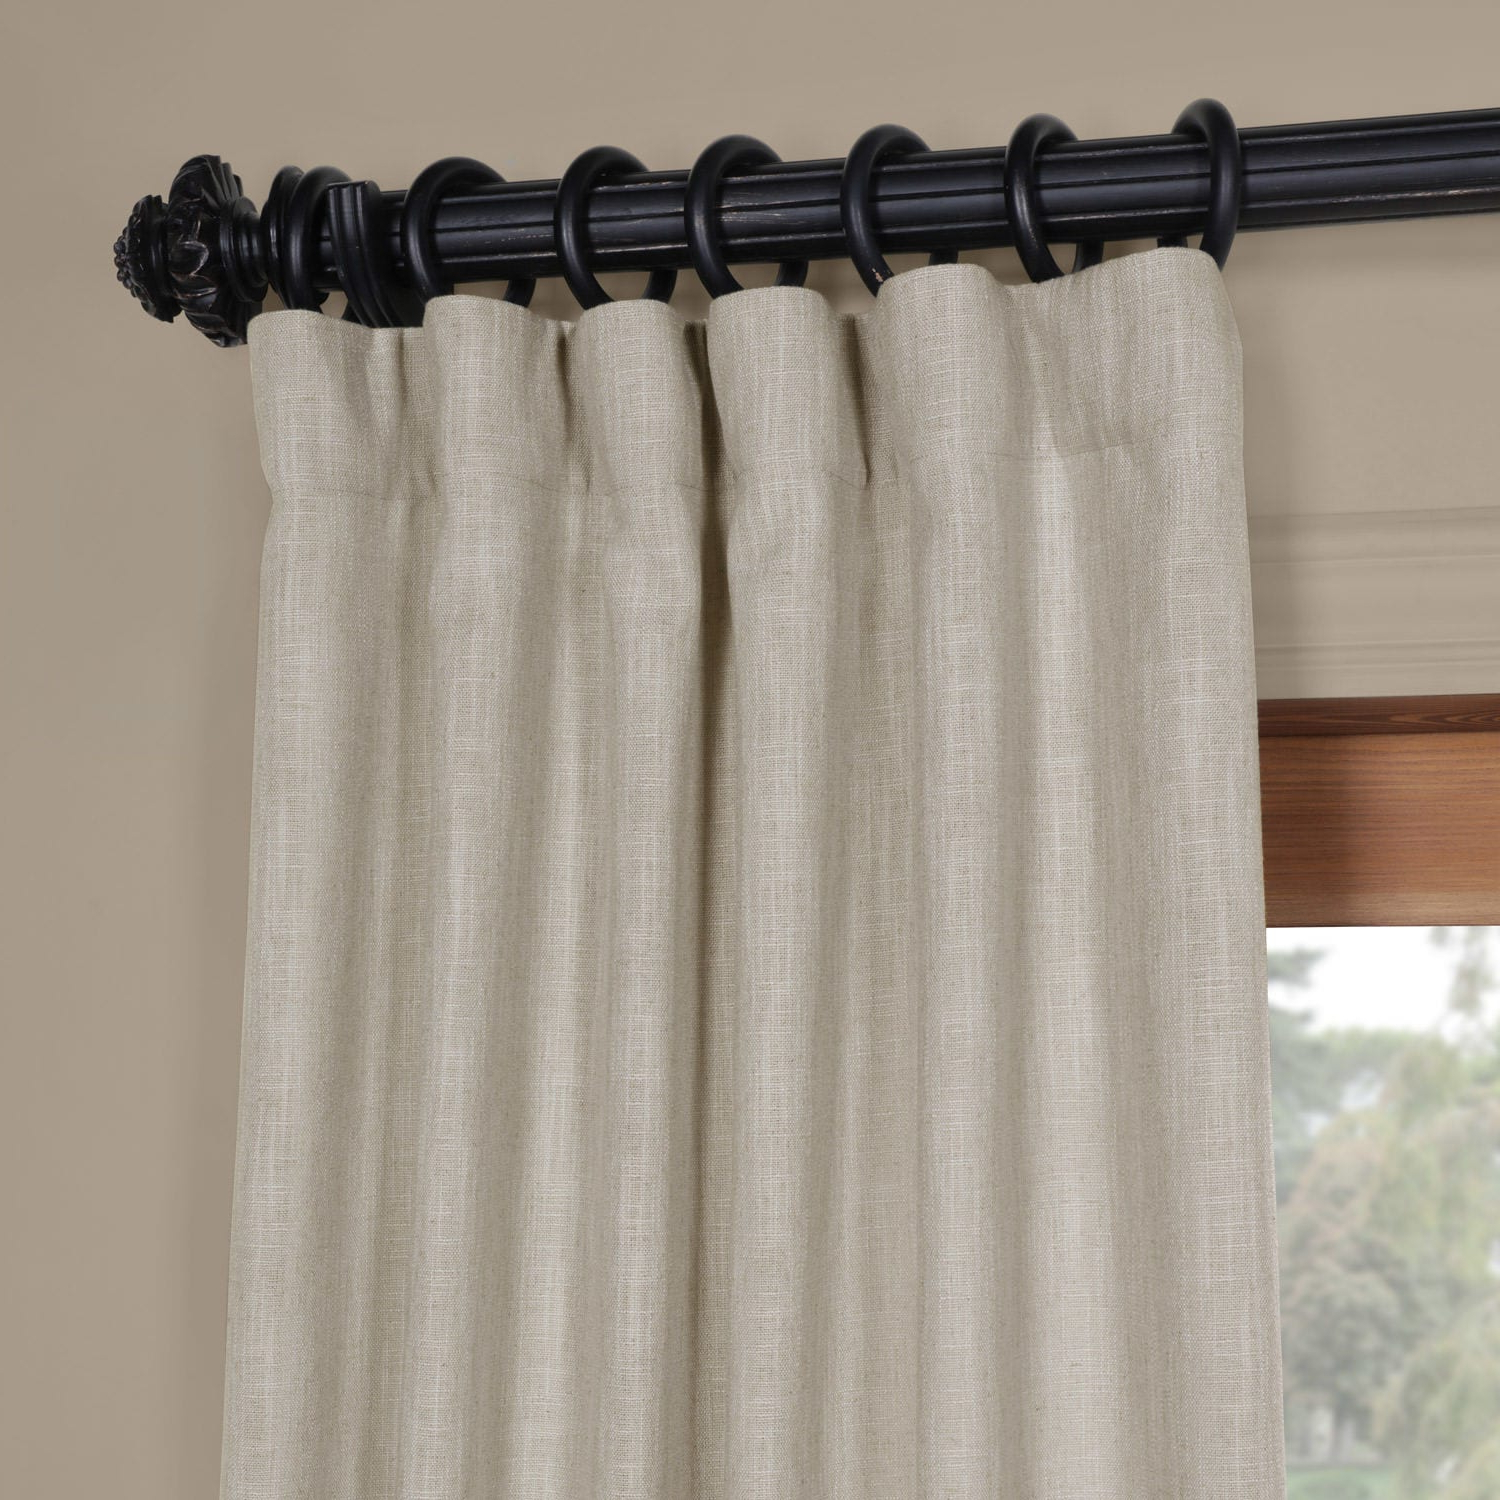 Heavy Faux Linen Single Curtain Panels Pertaining To Well Liked Half Price Drapes Solid Heavy Faux Linen Rod Pocket Single Curtain Panel (View 6 of 20)